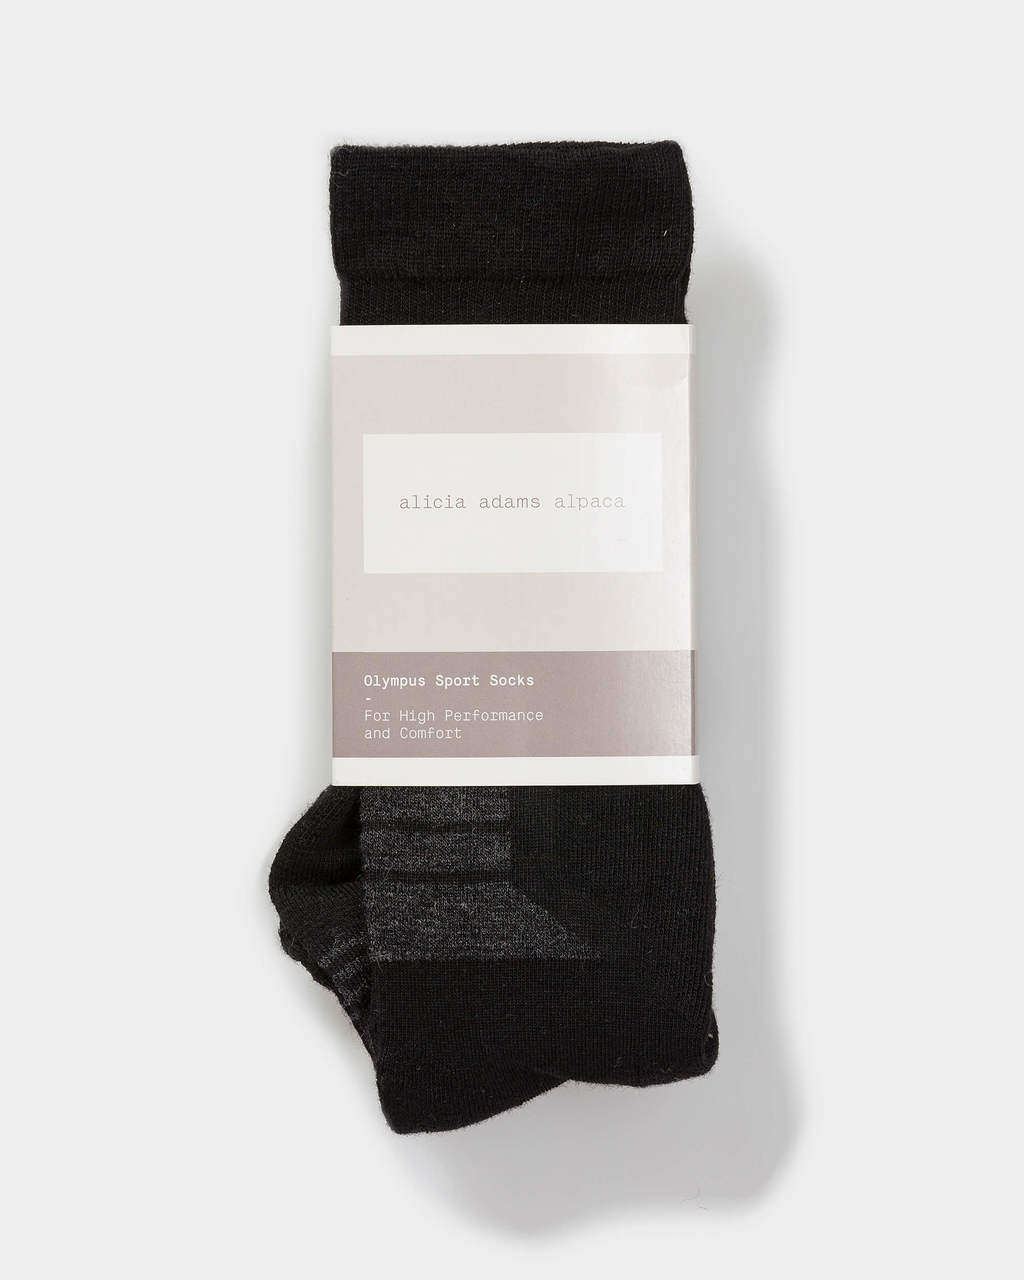 Alicia Adams Alpaca Olympus Sport Sock - 100% baby alpaca , alpaca socks mens, womens alpaca socks,  alpaca socks for sale, black and charcoal alpaca socks